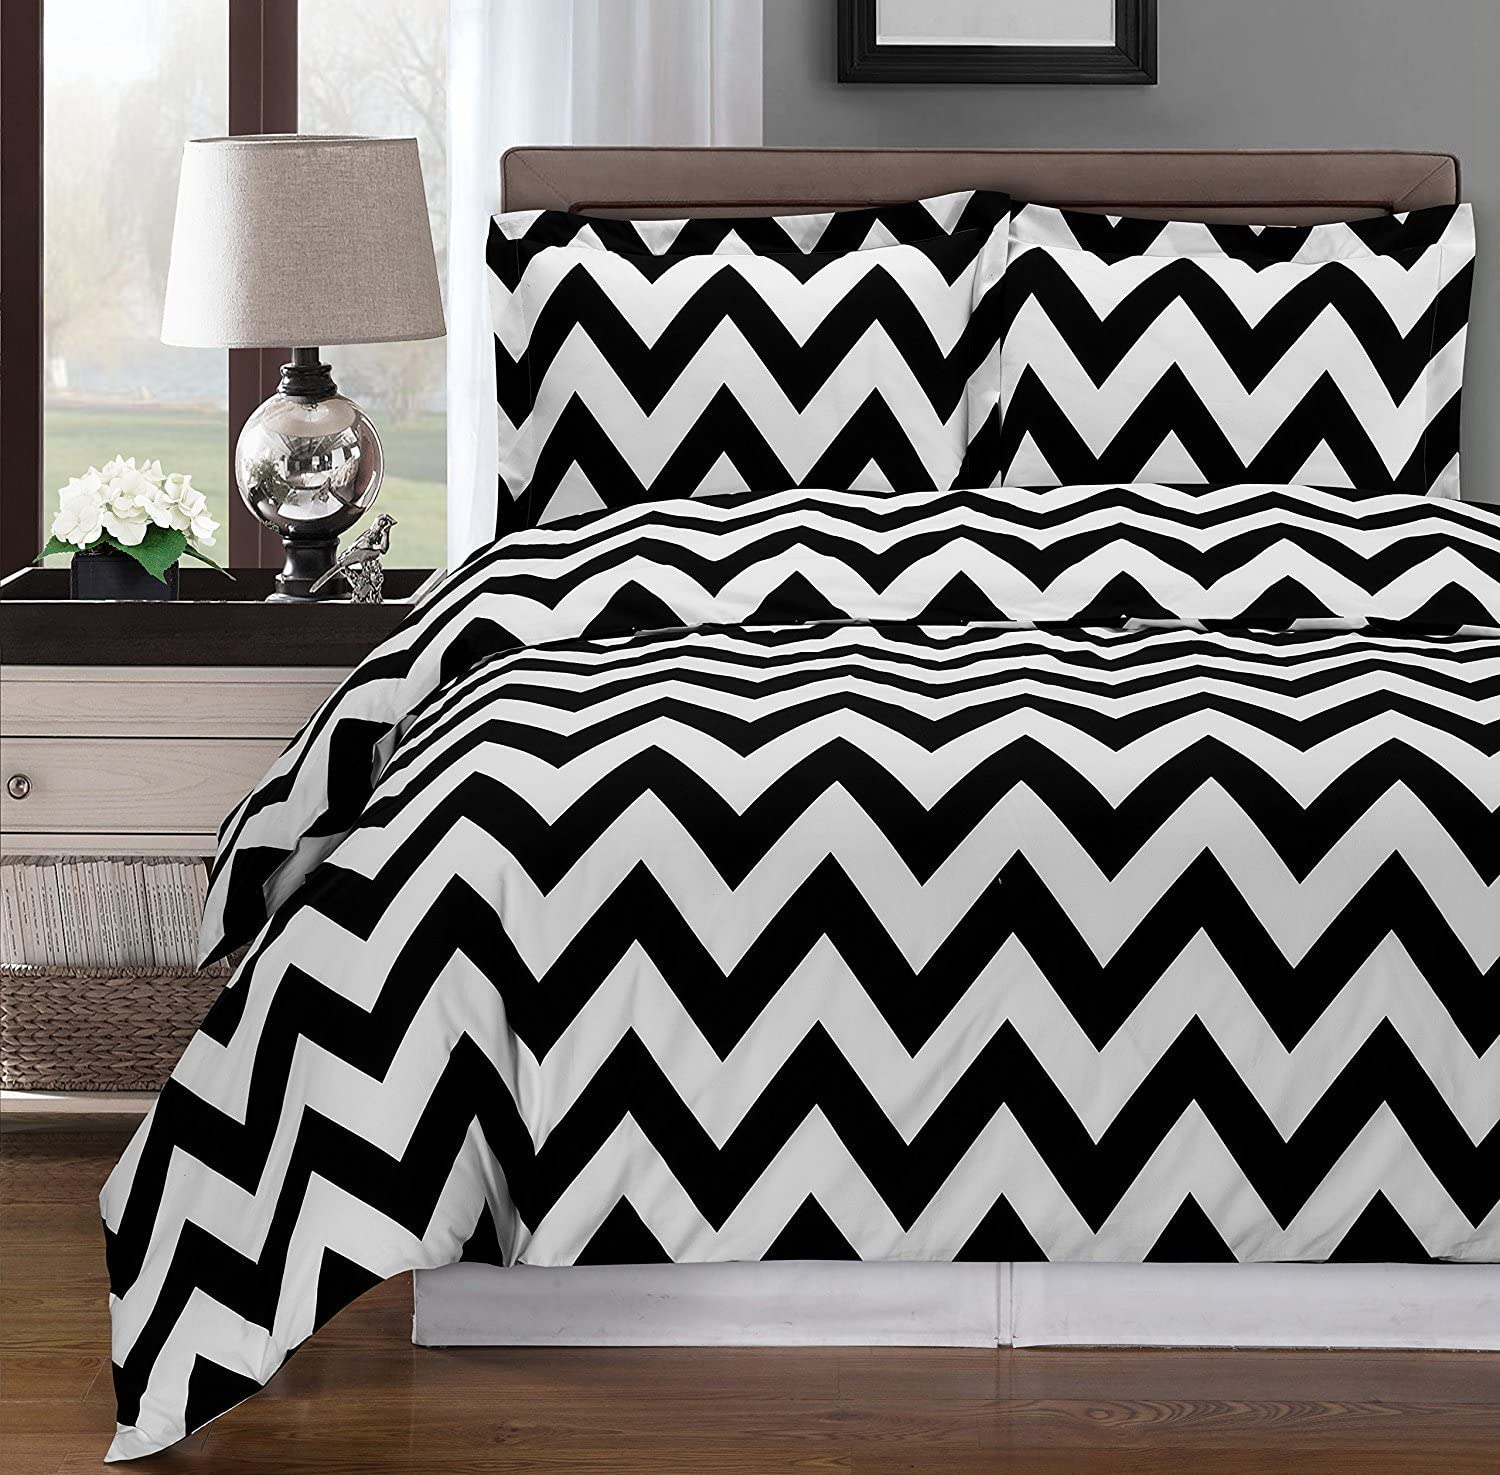 Black and White Chevron trend rank Max 76% OFF 3-Piece King Cal-King Duvet Set Cover